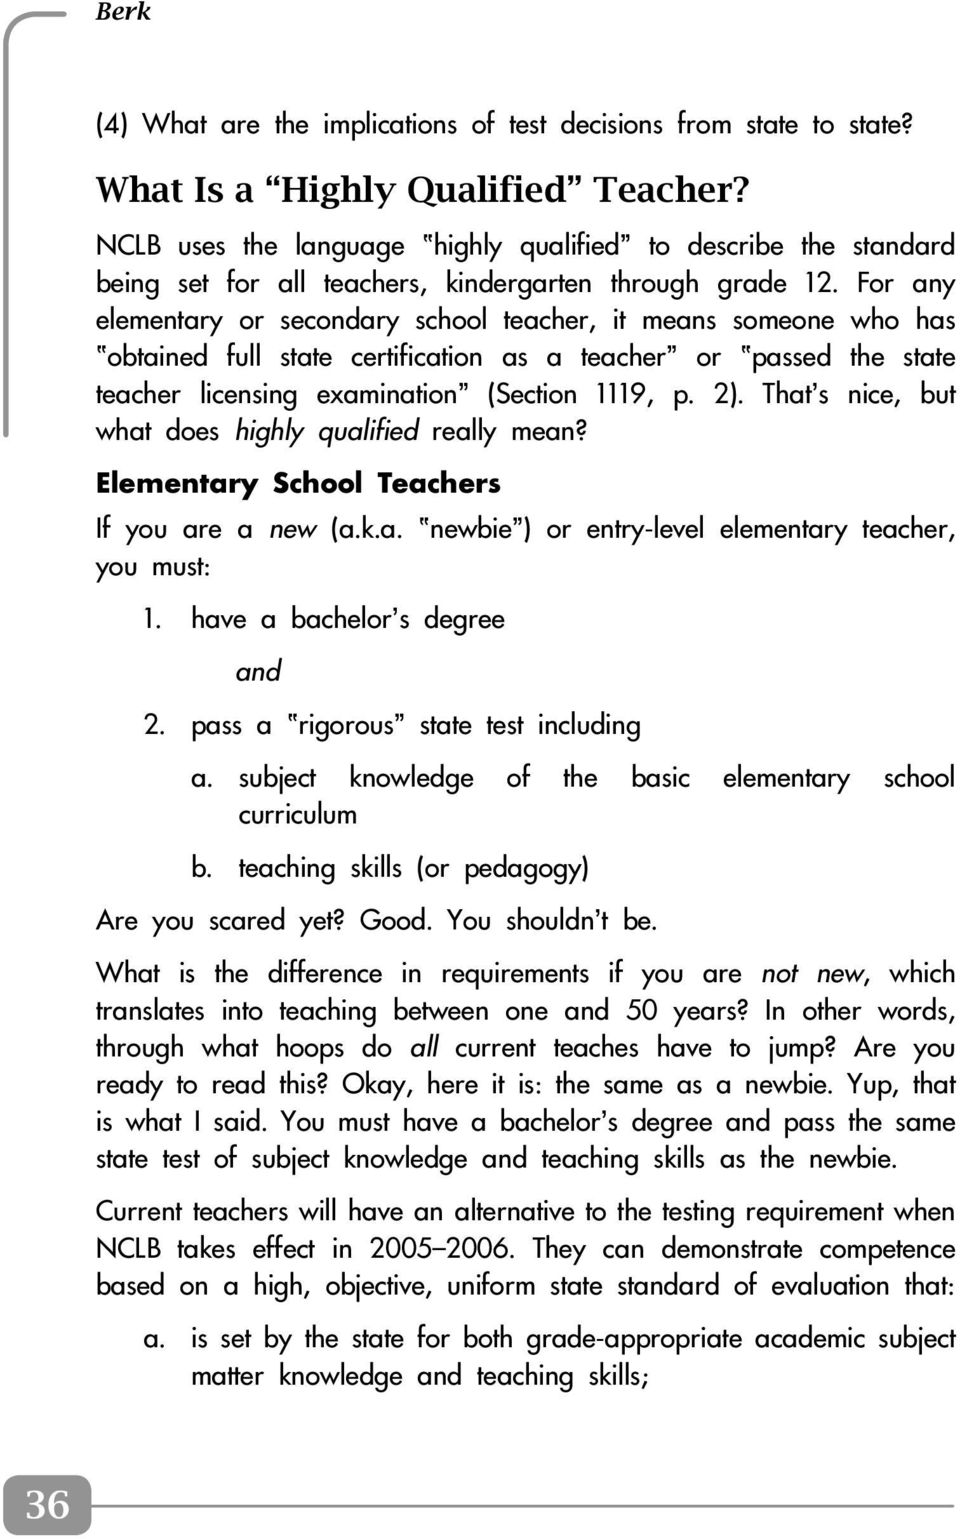 For any elementary or secondary school teacher, it means someone who has obtained full state certification as a teacher or passed the state teacher licensing examination (Section 1119, p. 2).